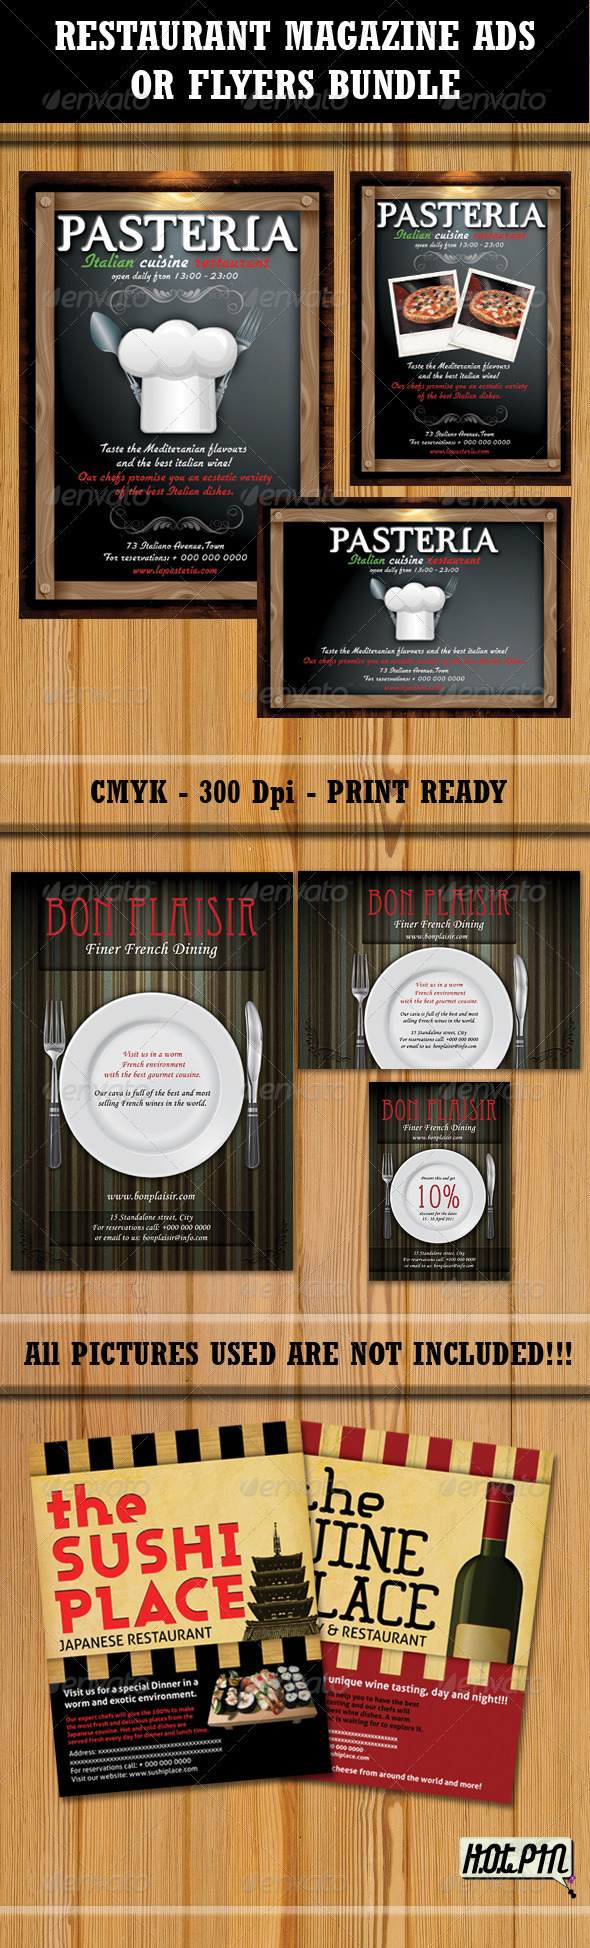 Restaurant Magazine Ads-Flyers Bundle - Restaurant Flyers